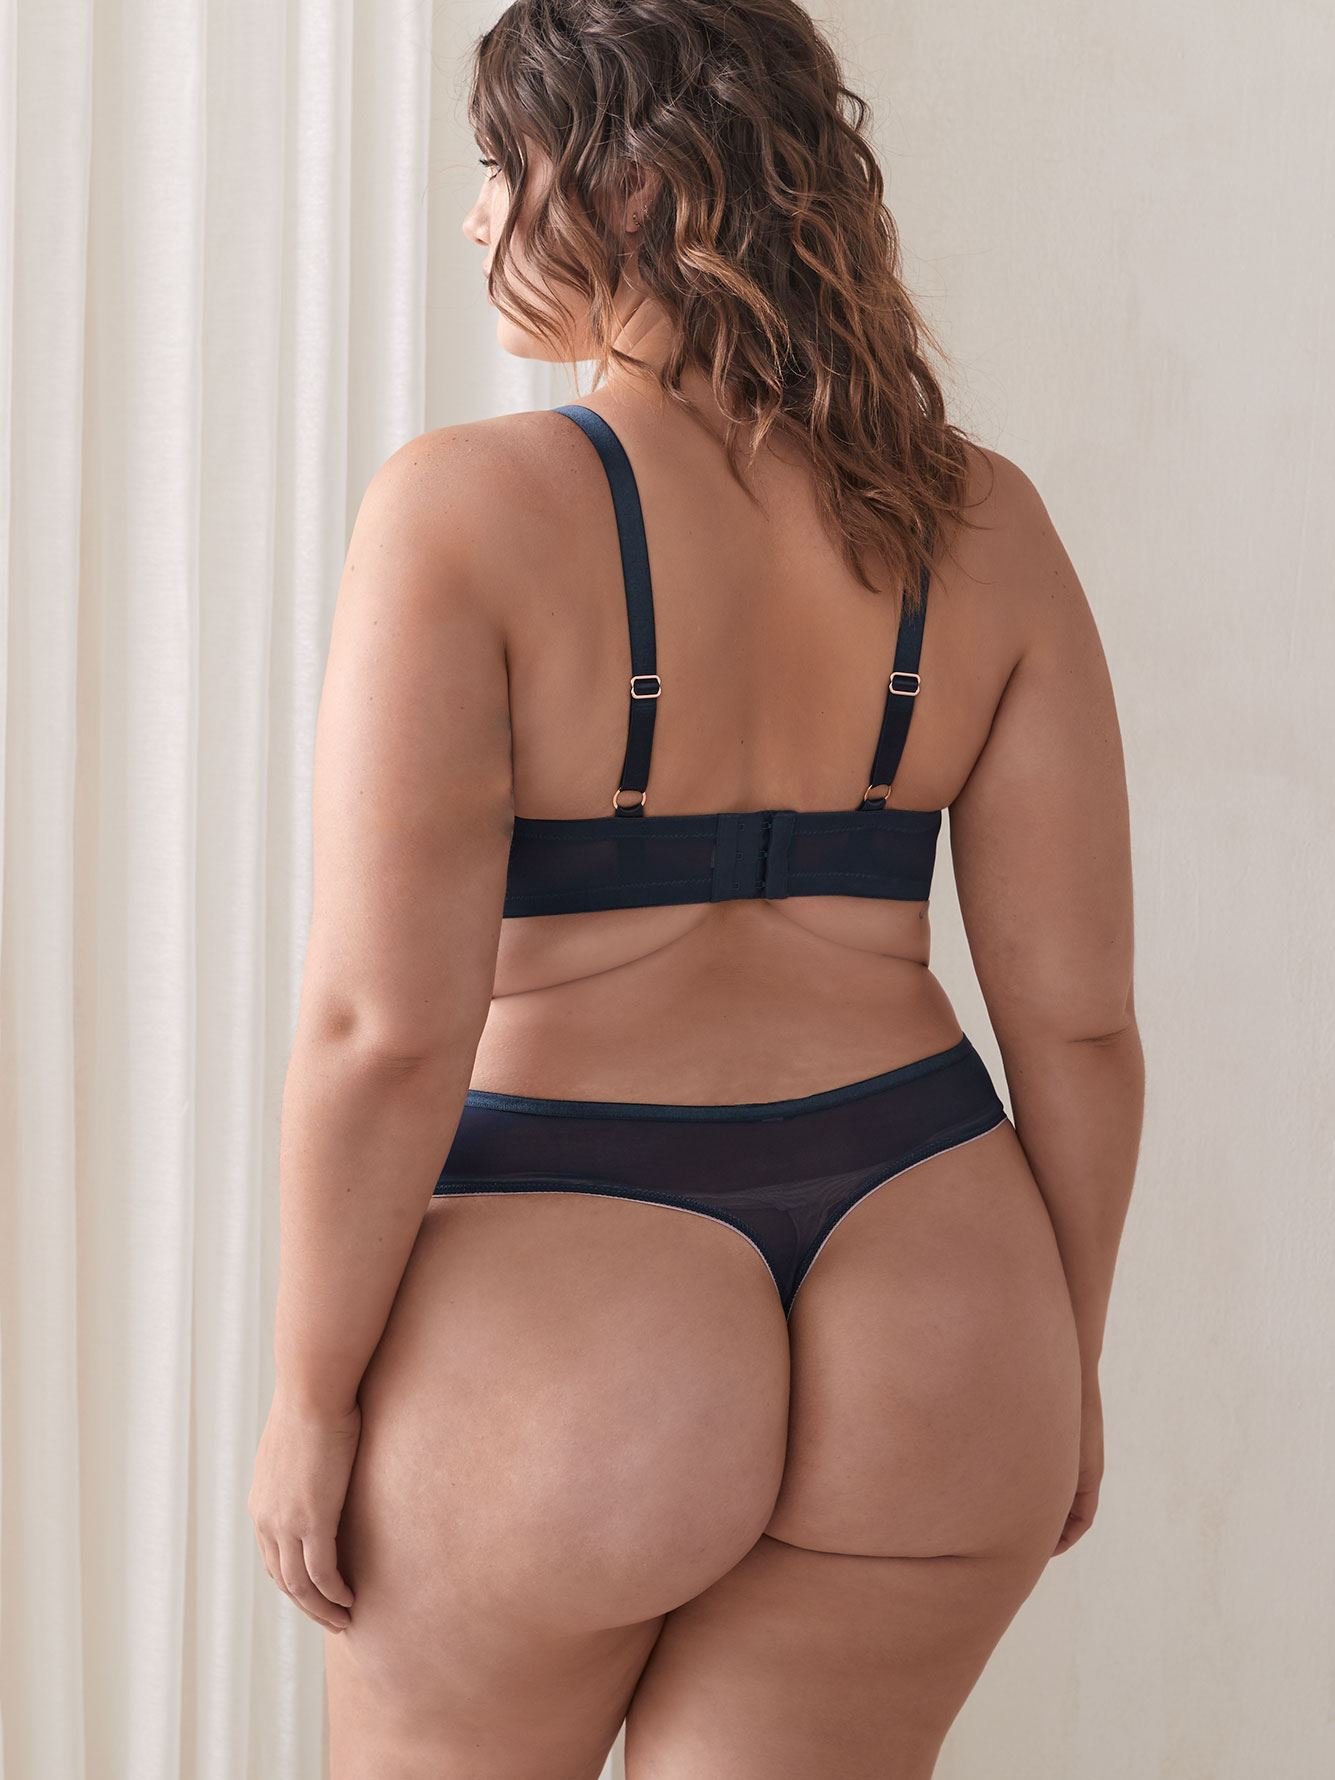 Demi Cup Diva Bra with Embroidery - Ashley Graham